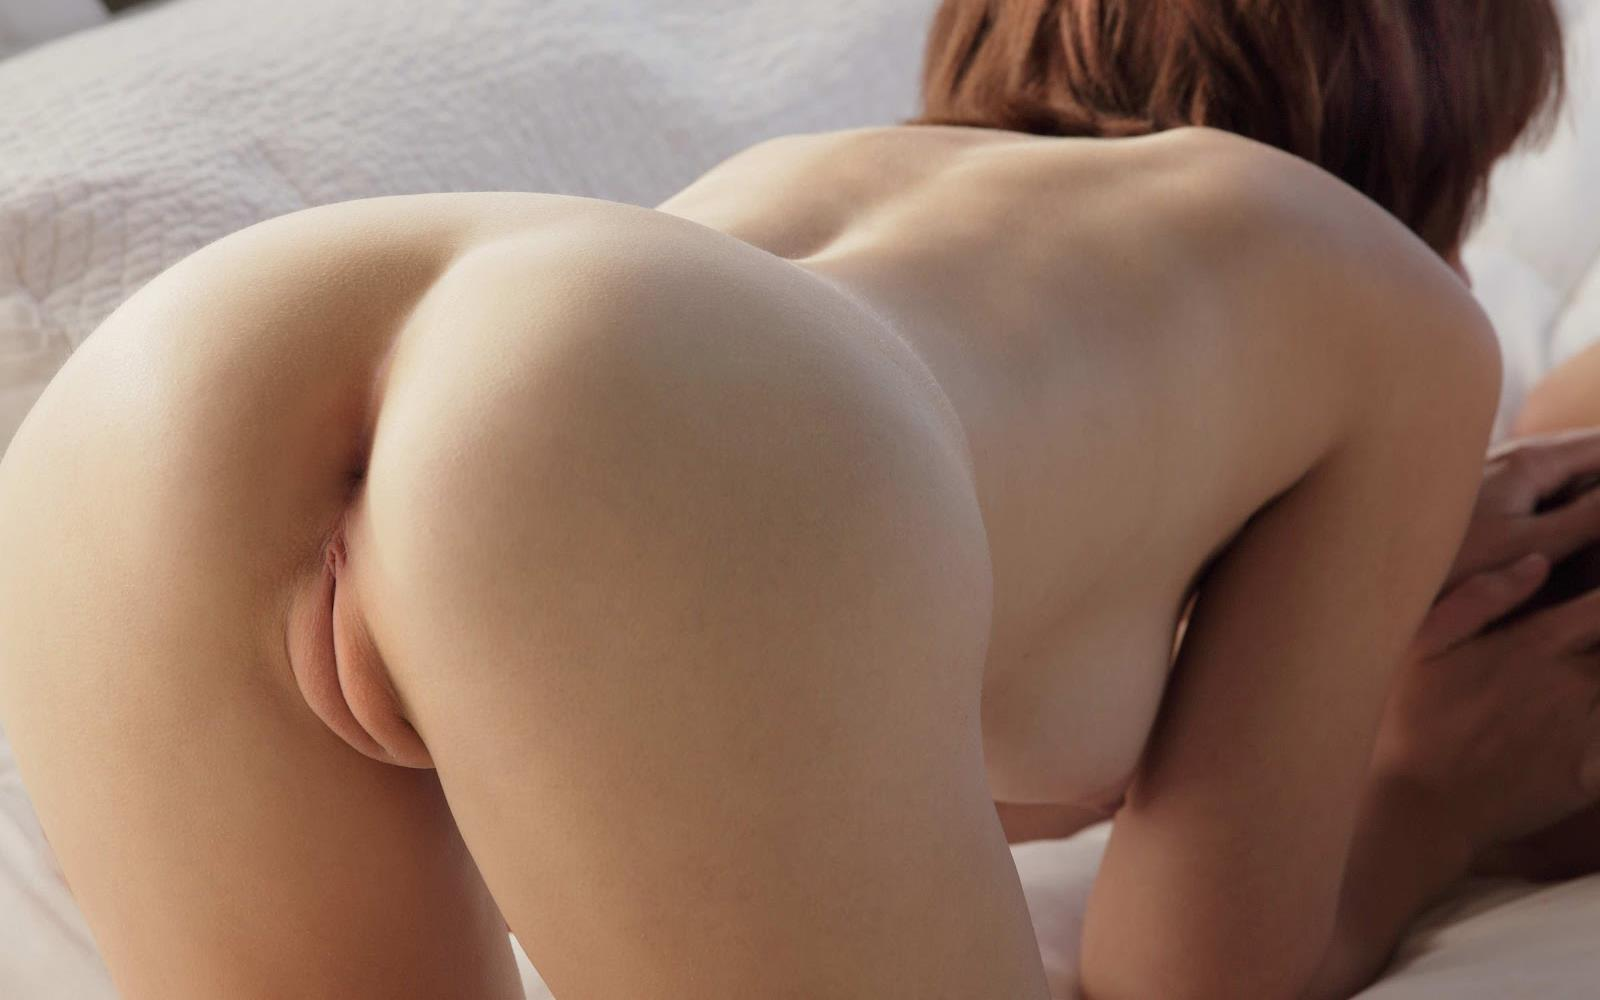 pics-of-naked-ass